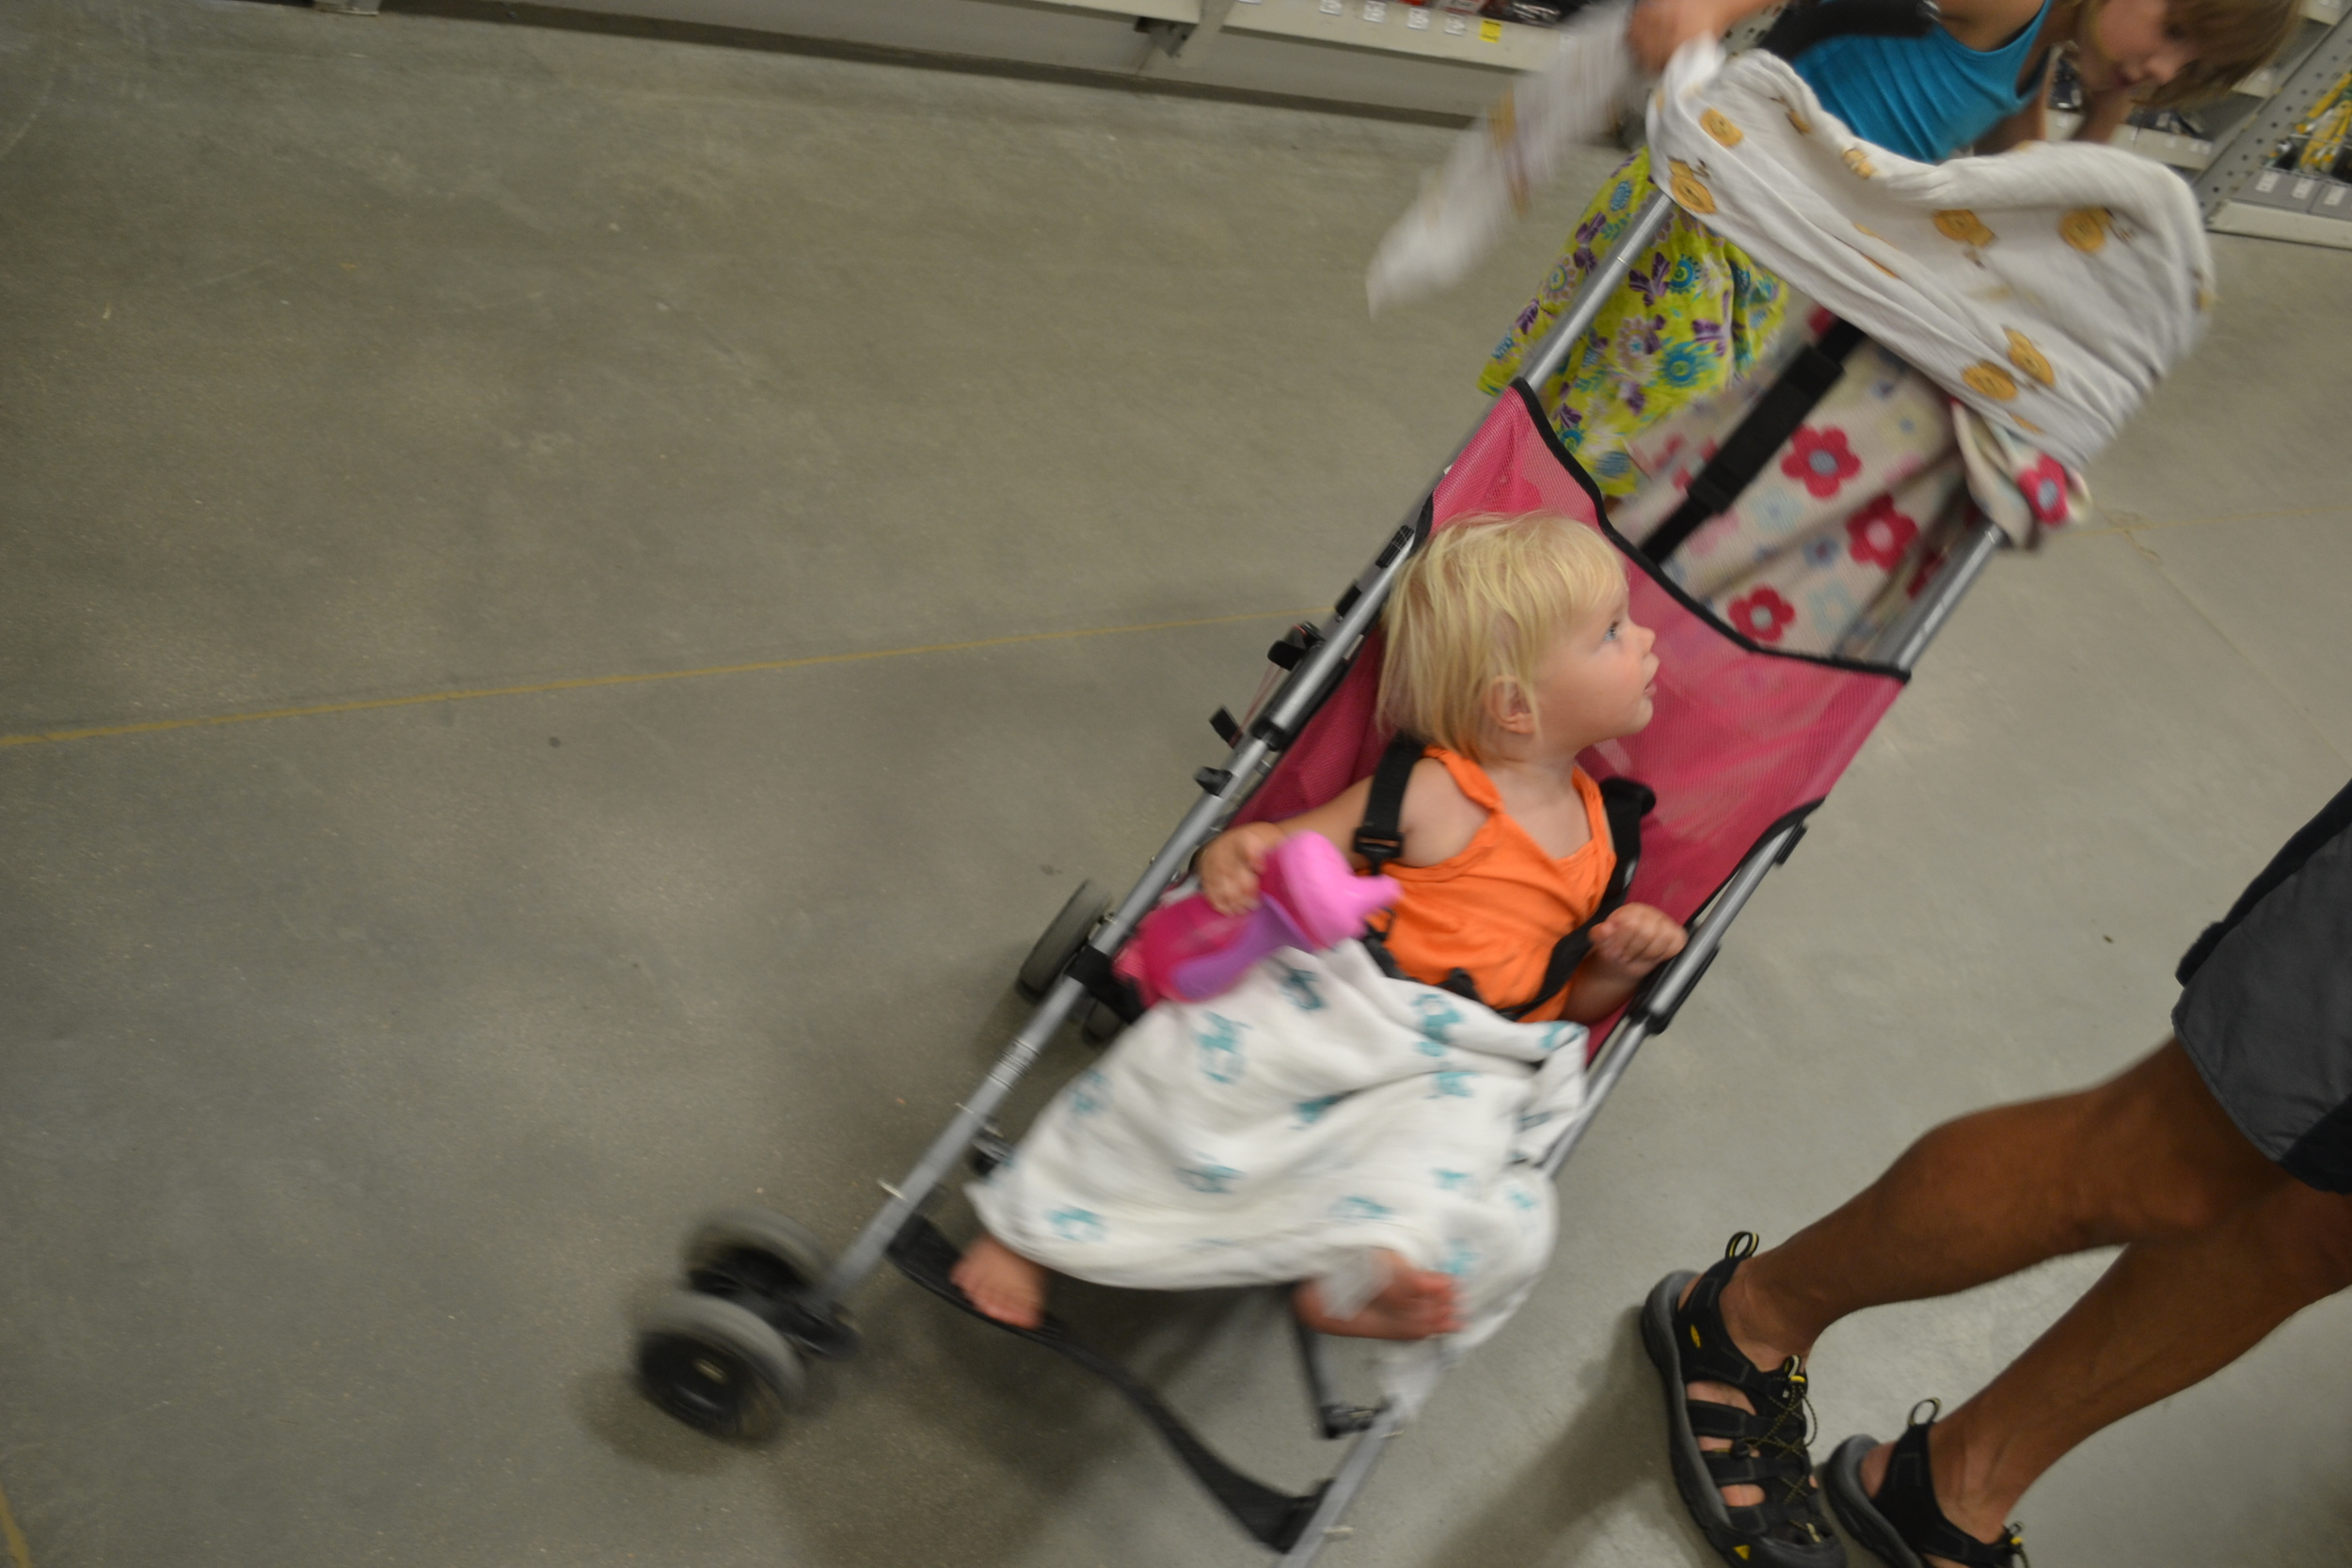 Baby in stroller at Lowes